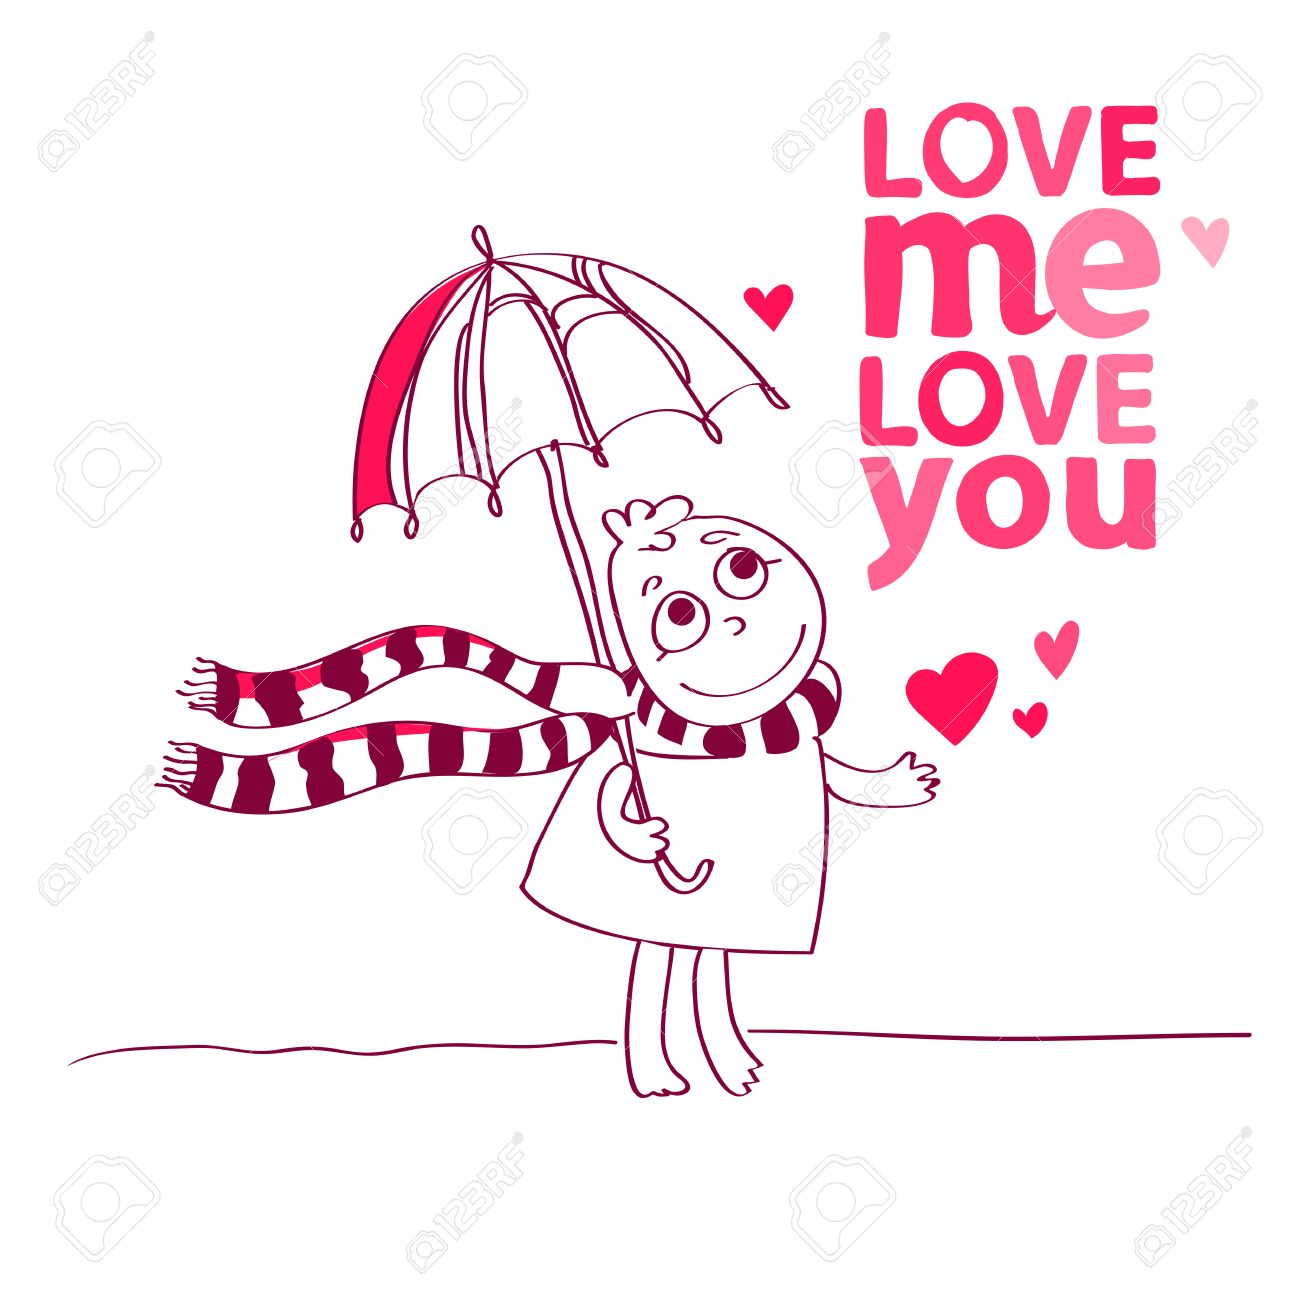 Charming Illustration Of A Cute Character Is Saying Love Me Love You And Love Me.  Cute